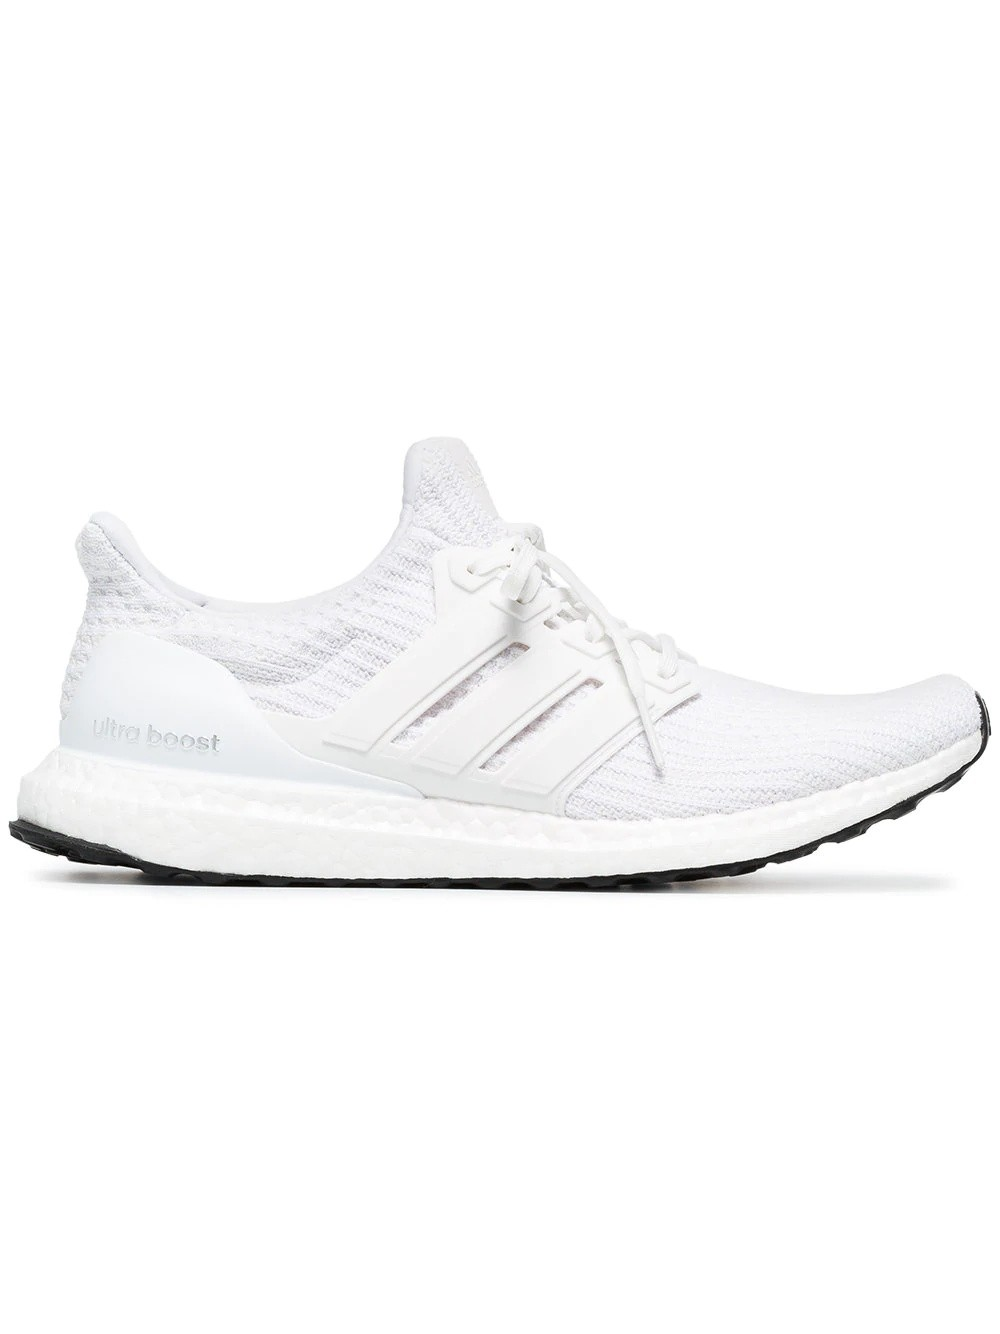 Adidas Ultra Boost - Homme - Fonctionnement - Chaussures - Blanche BB6168